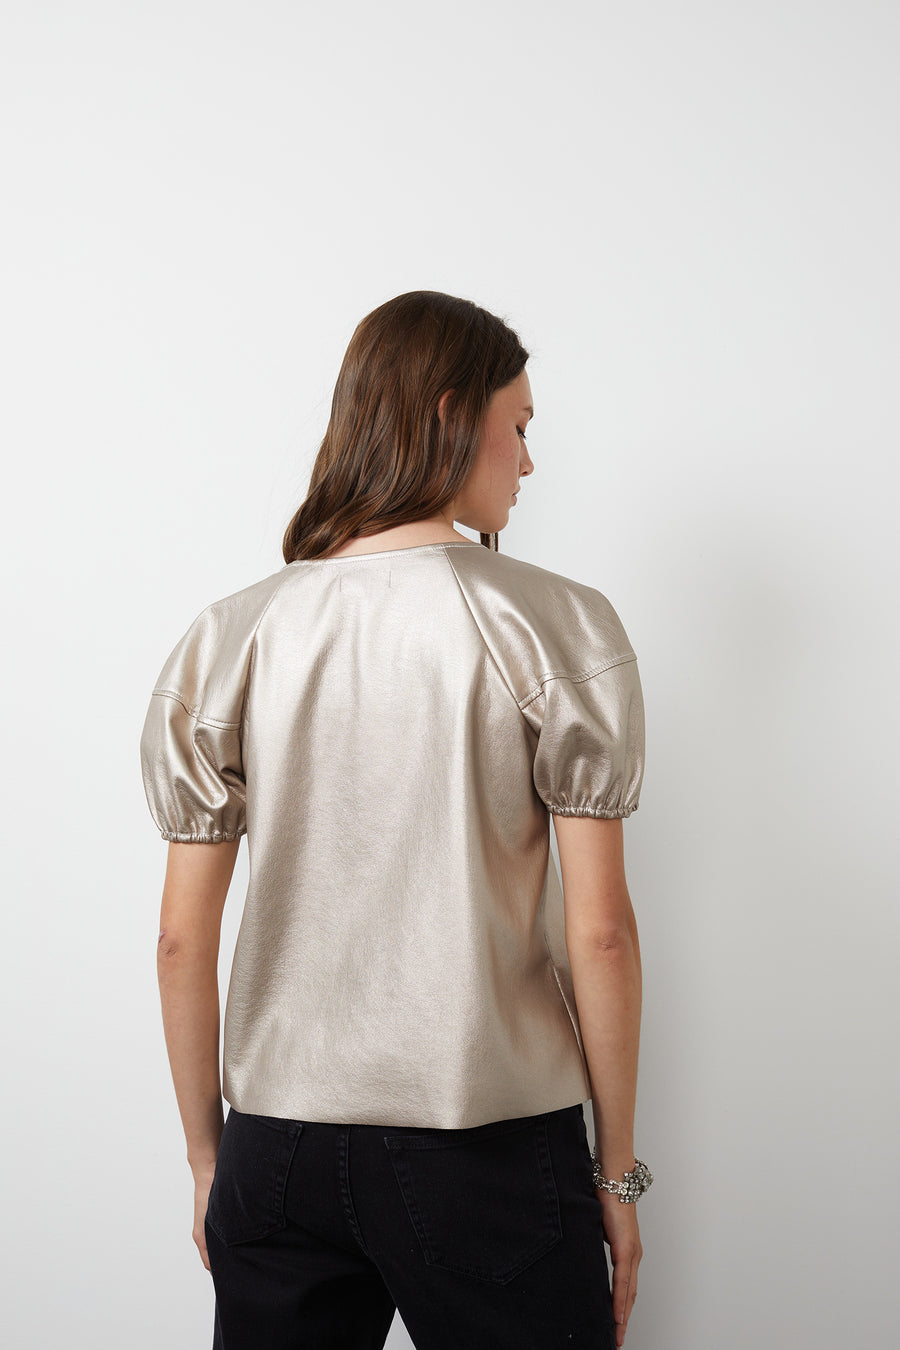 FOLEY VEGAN LEATHER BLOUSE